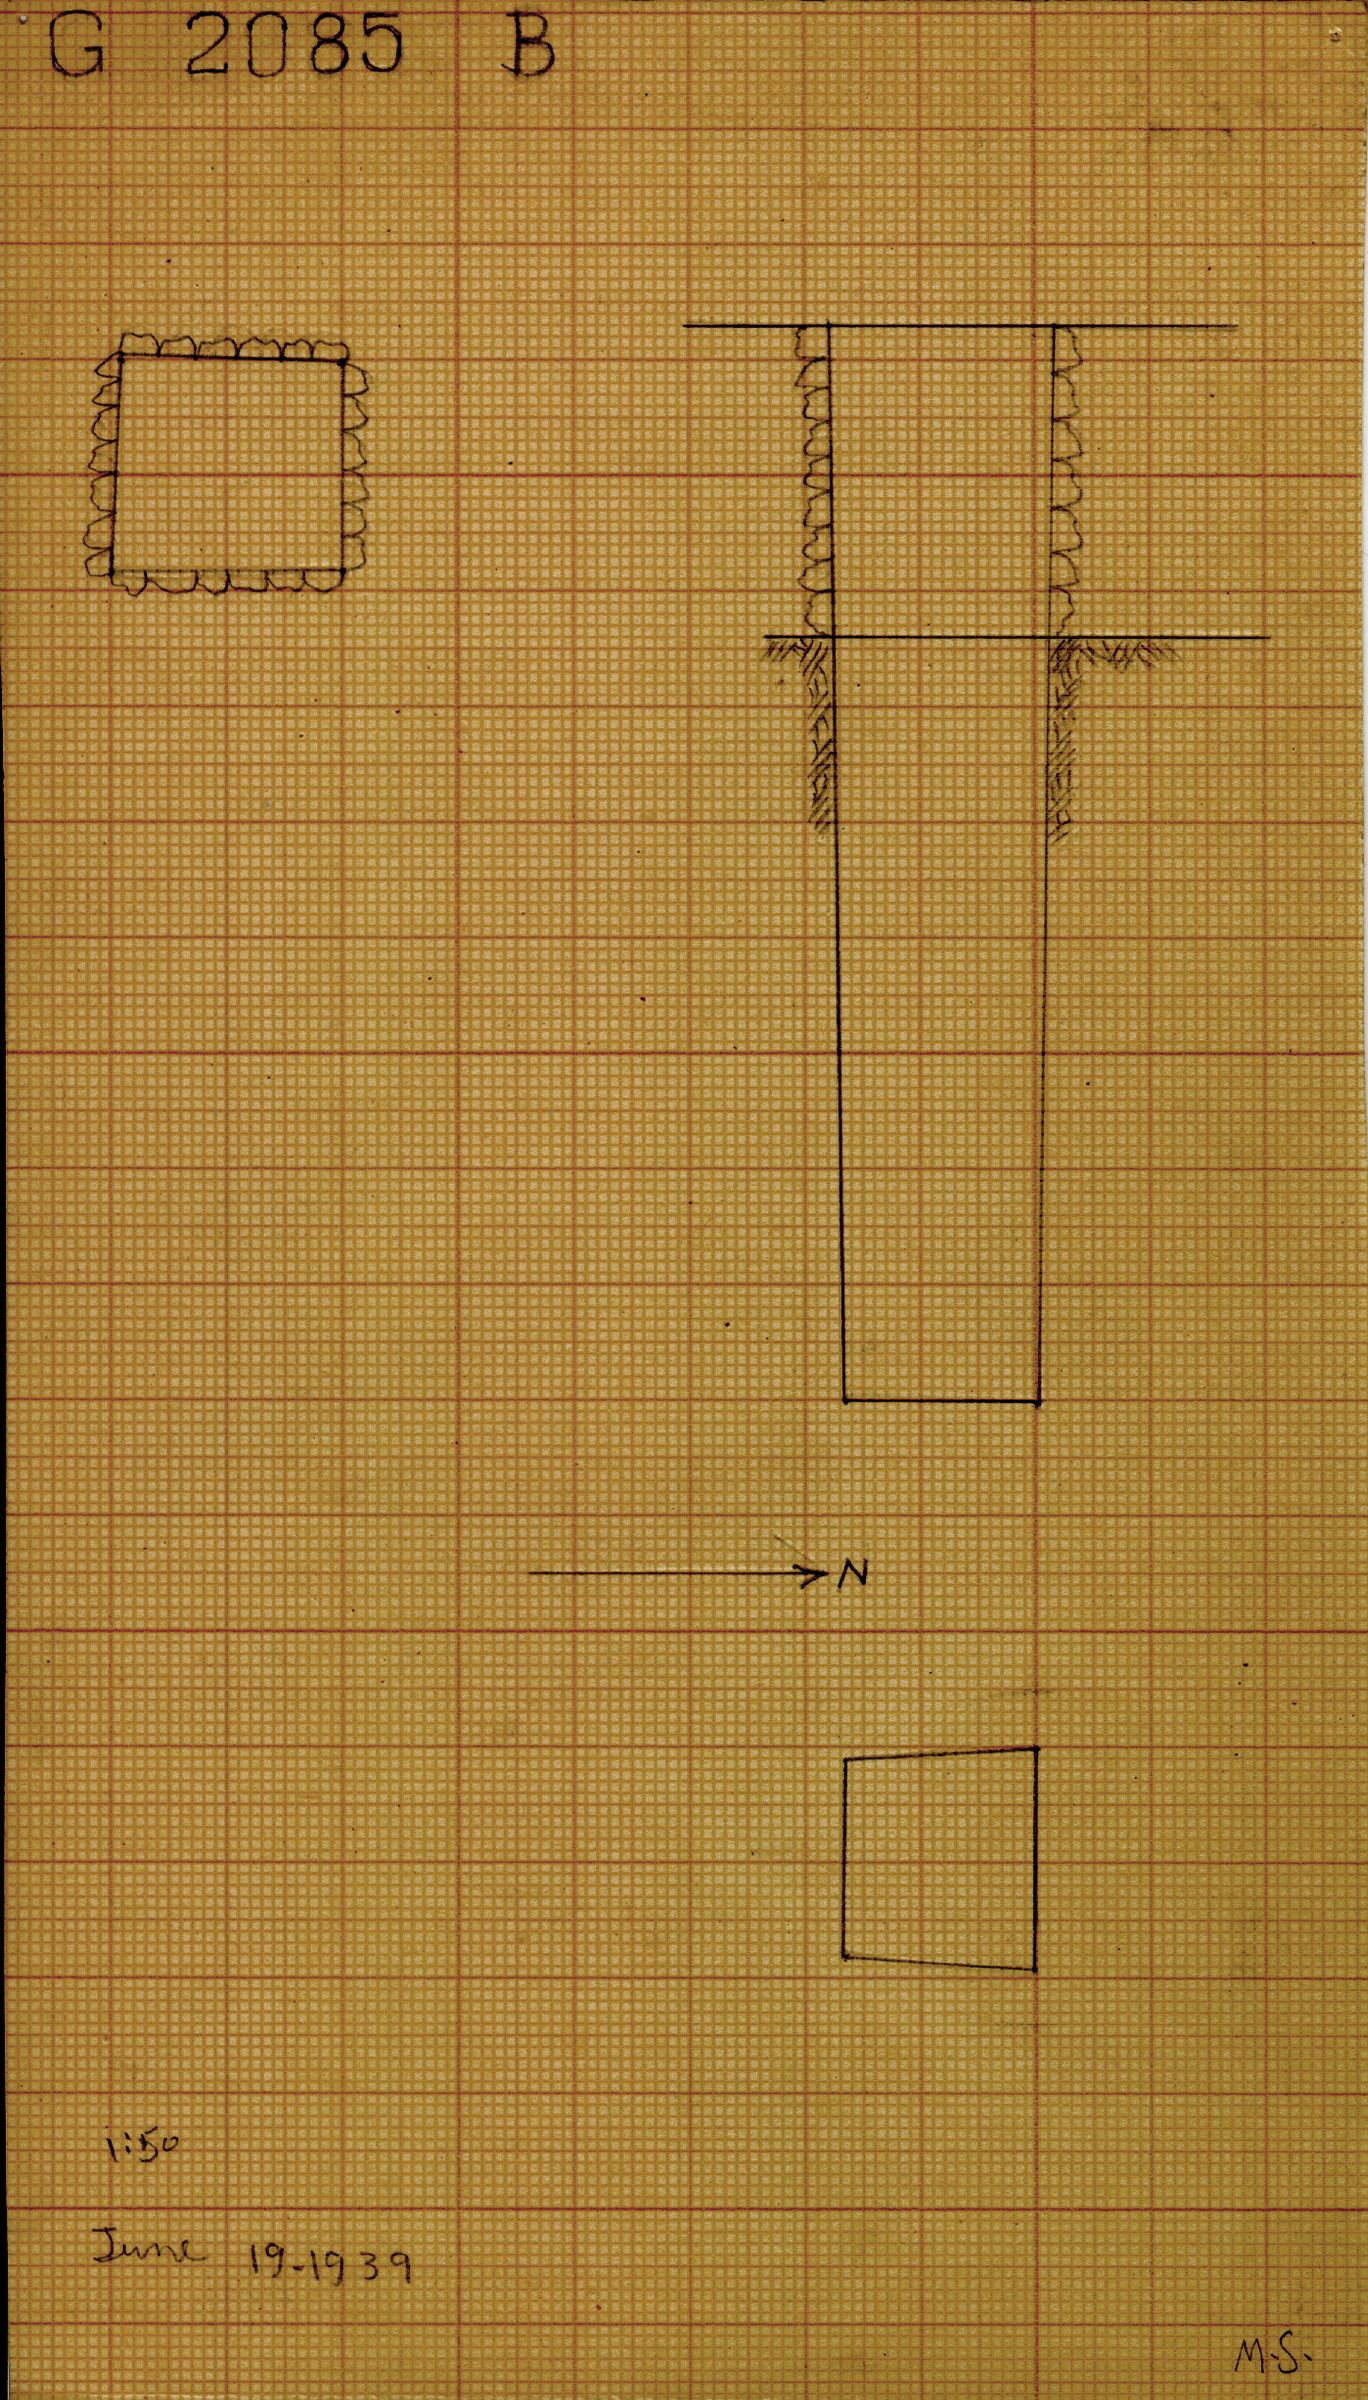 Maps and plans: G 2085, Shaft B